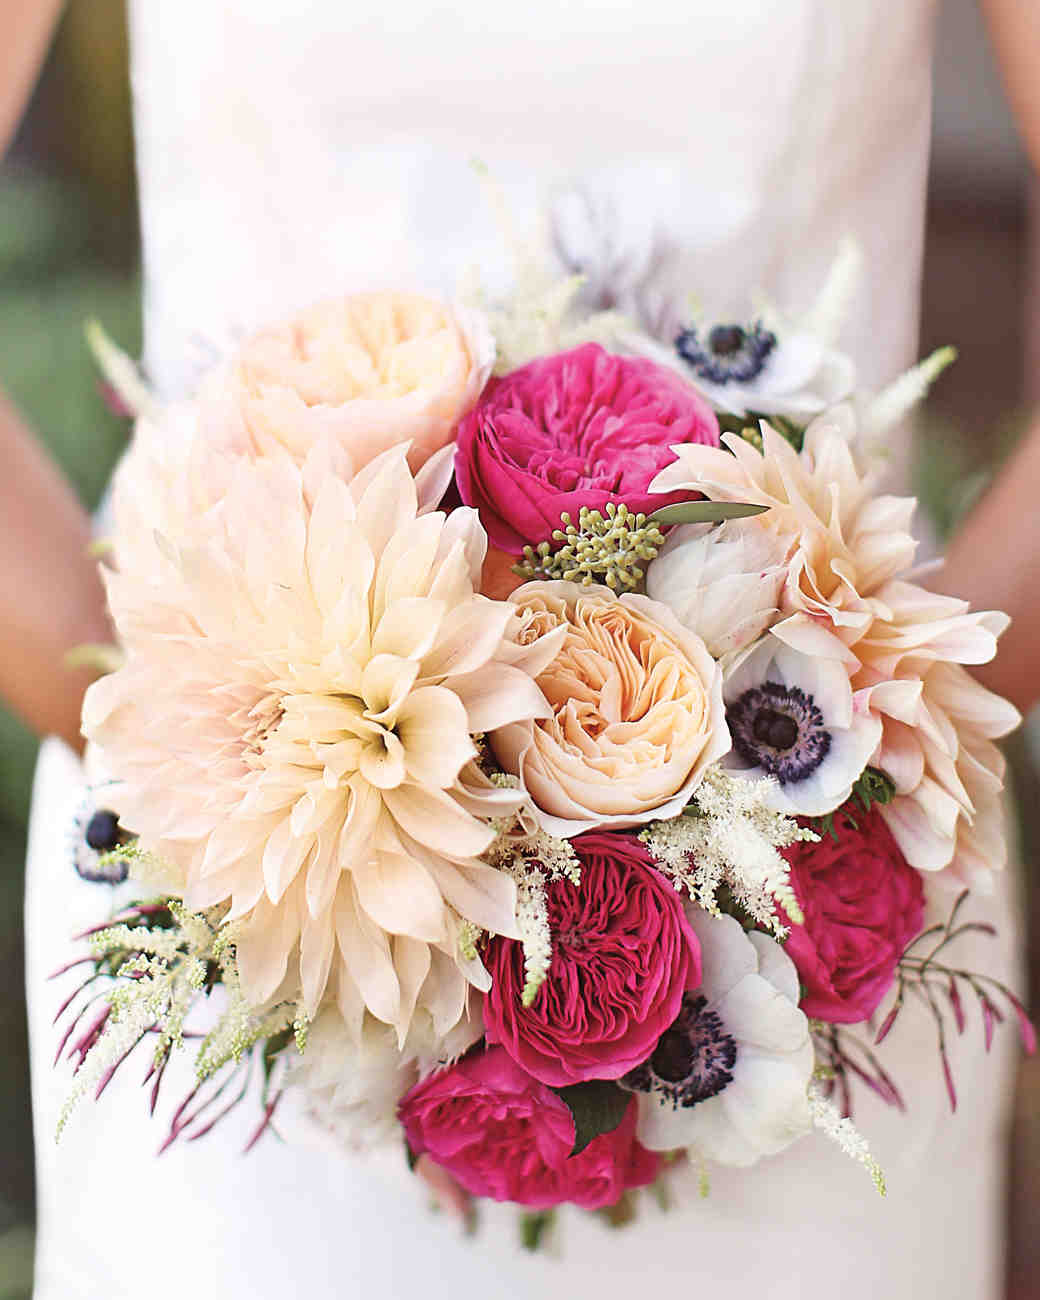 Find The Best Flower For Your Wedding Color Palette Martha Stewart